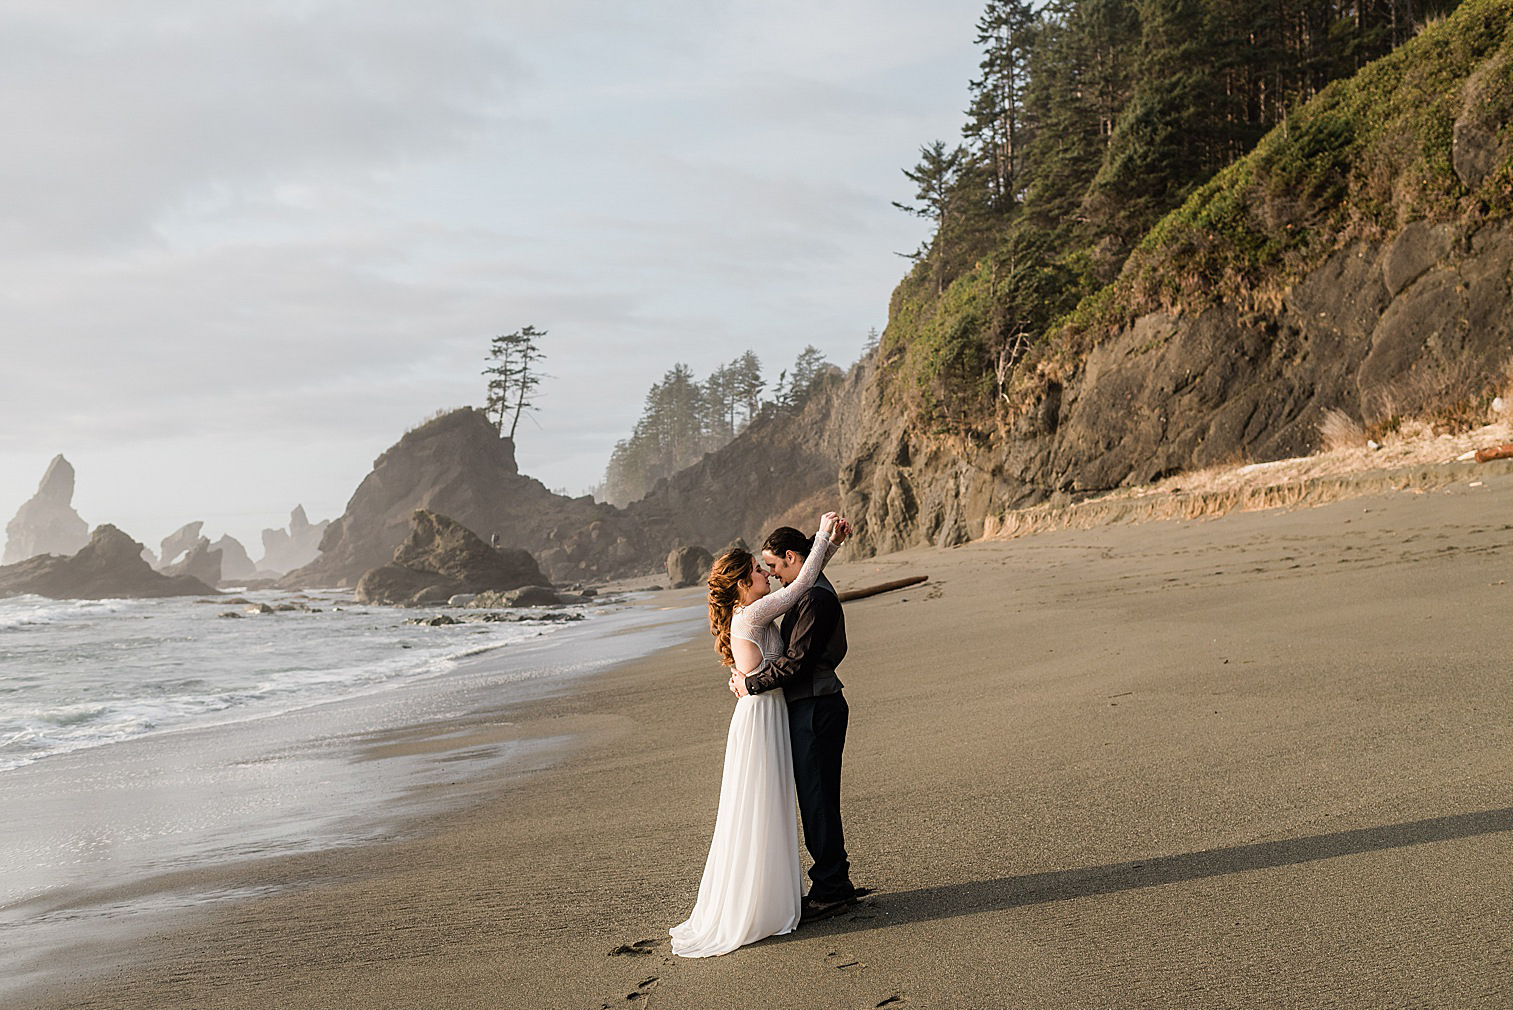 Olympic National Park Elopement Inspiration Shoot at Shi Shi Beach, bride & groom on the shoreline at sunset. Image by Forthright Photo.